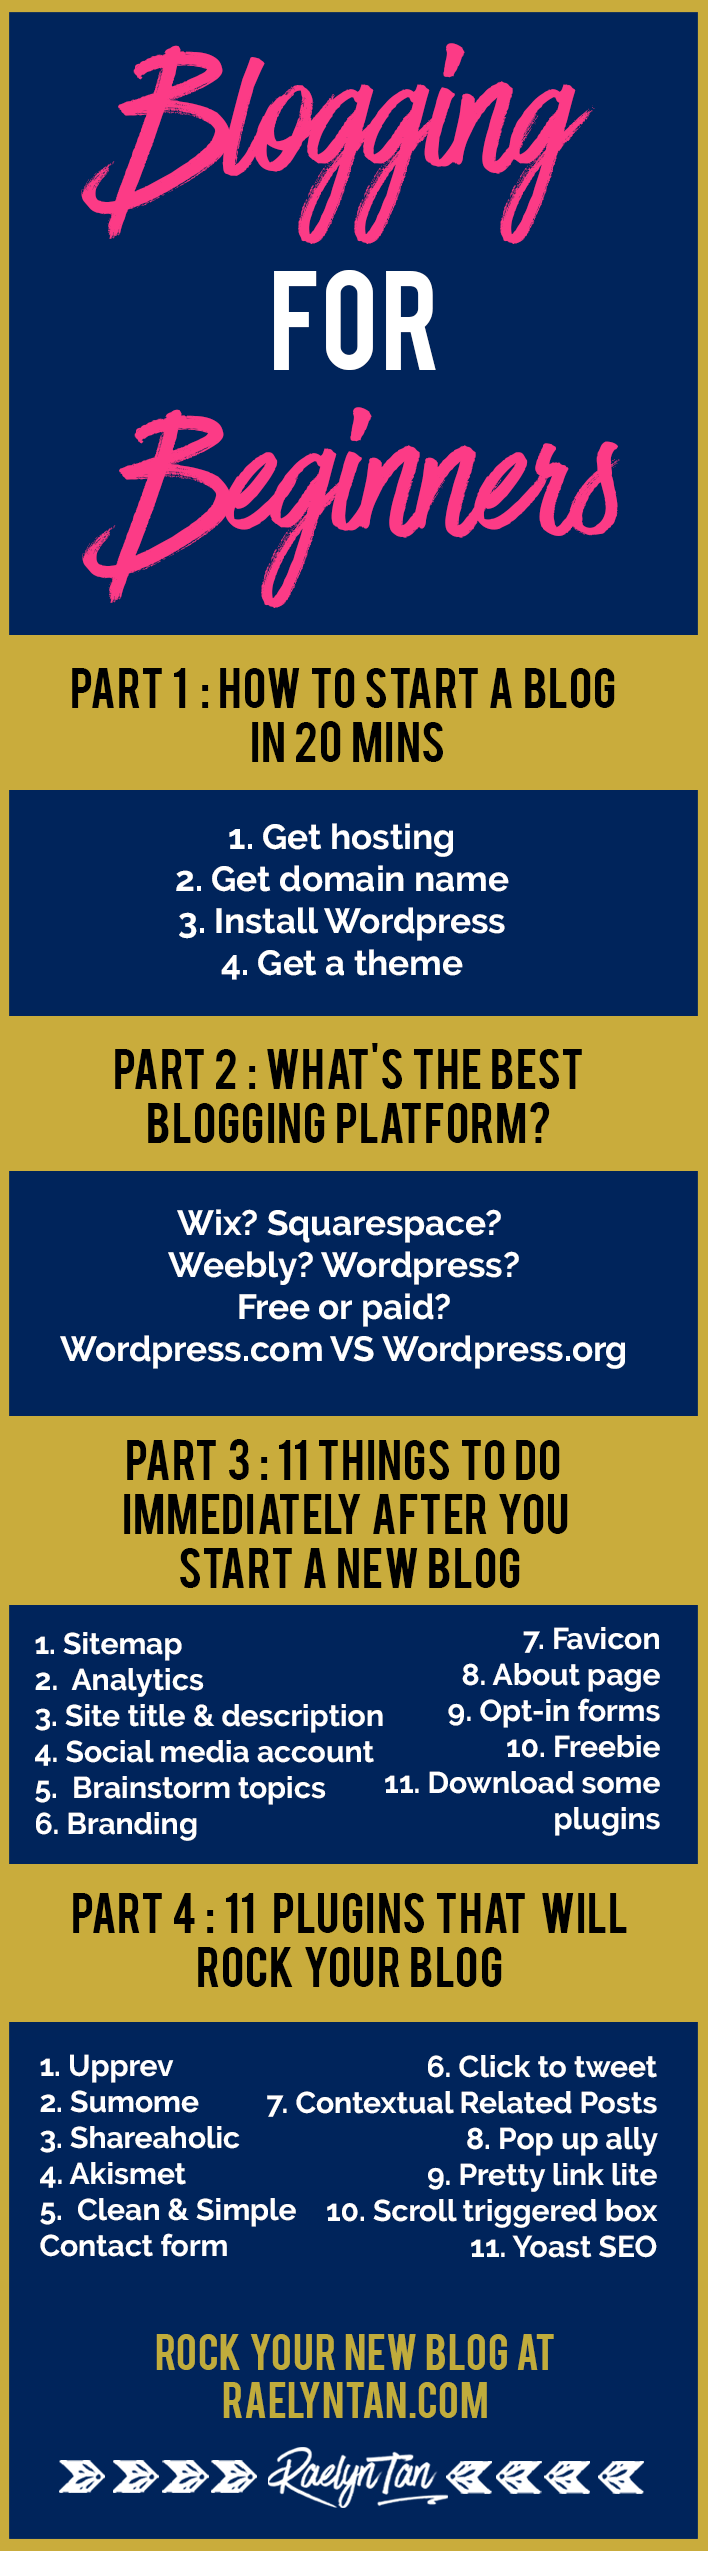 Blogging For Beginners: How to start a website in 20 minutes to make money blogging, using self-hosted WordPress. This is a 4-part series for beginner bloggers to start a blog business for profit.